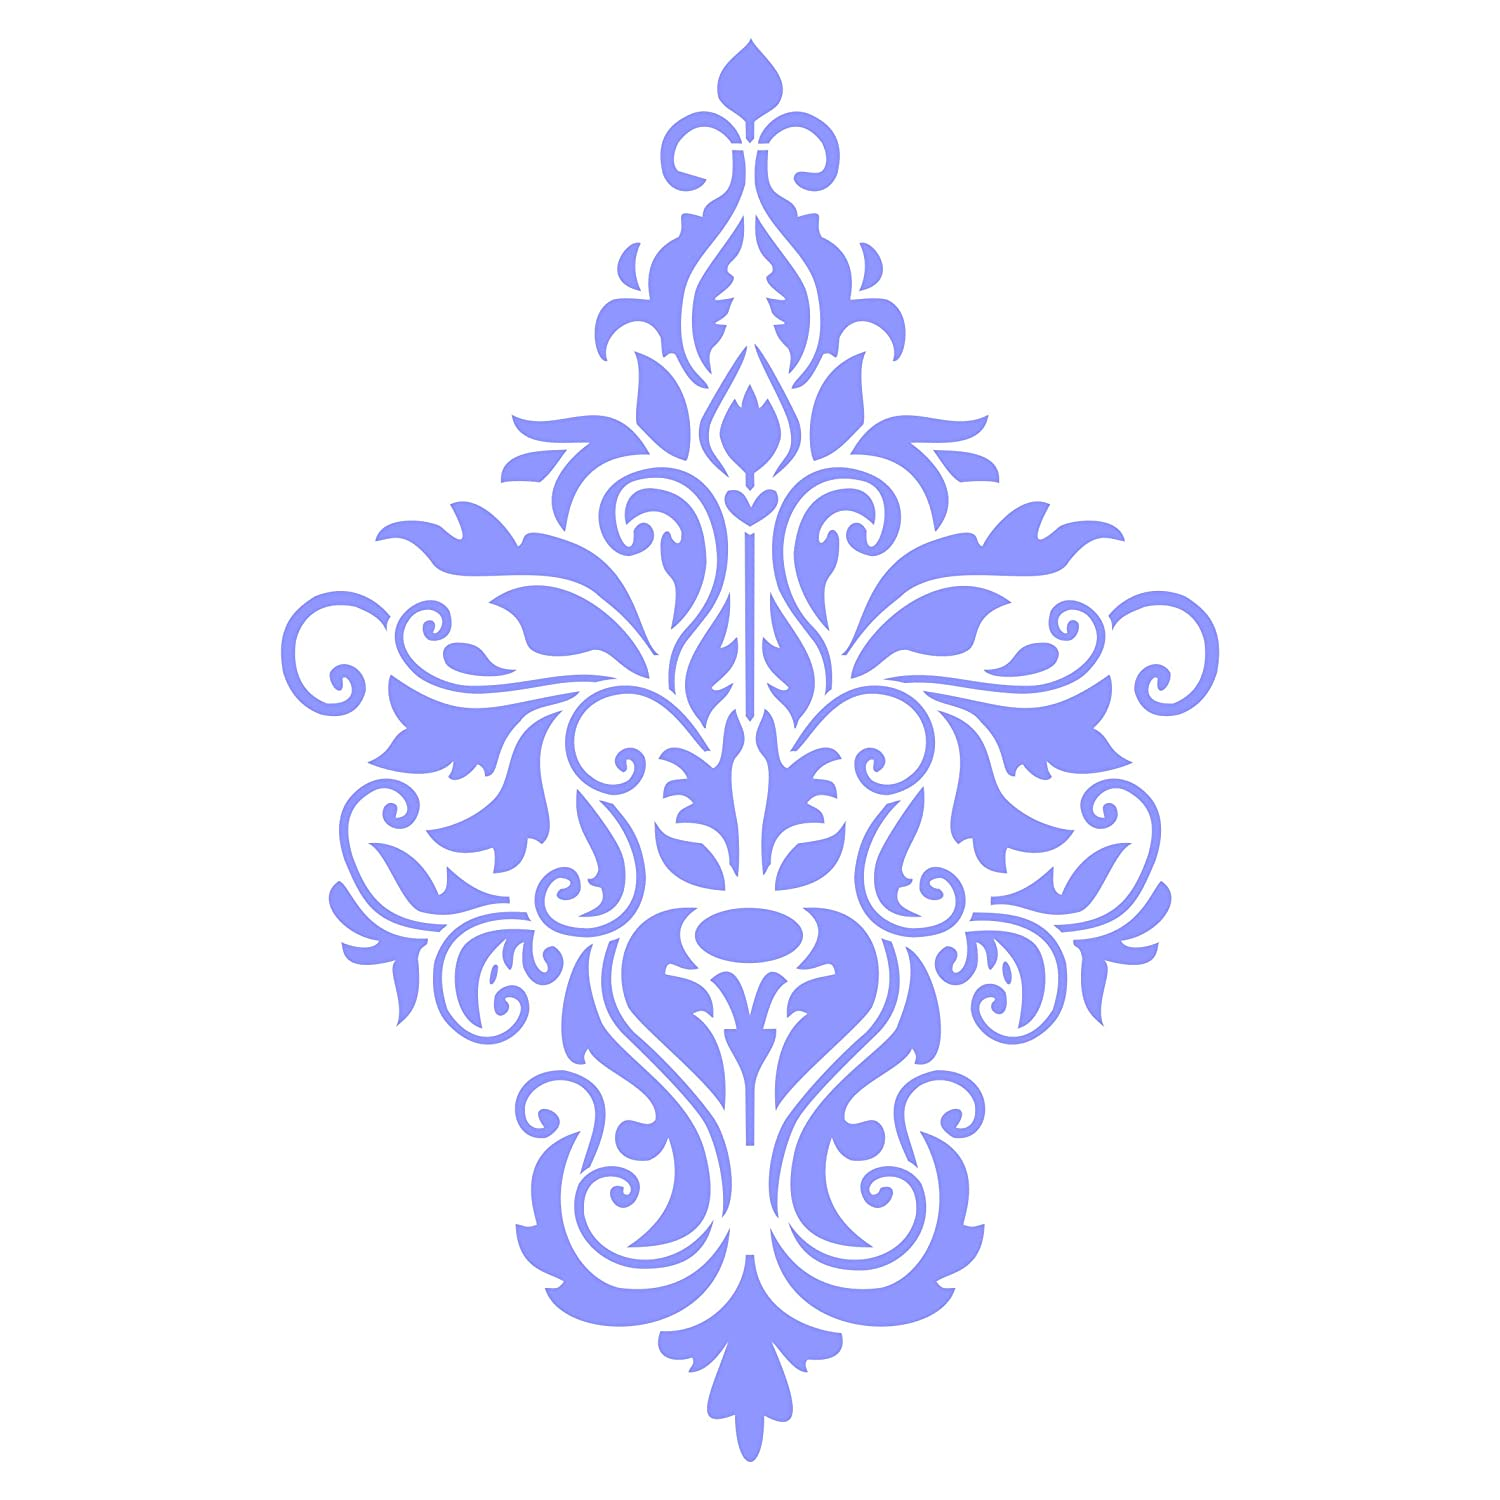 - Reusable Large Floral Allover Pattern Wall Stencil Template 15 x 23cm Damask Stencil Use On Paper Projects Scrapbook Journal Walls Floors Fabric Furniture Glass Wood Etc. M